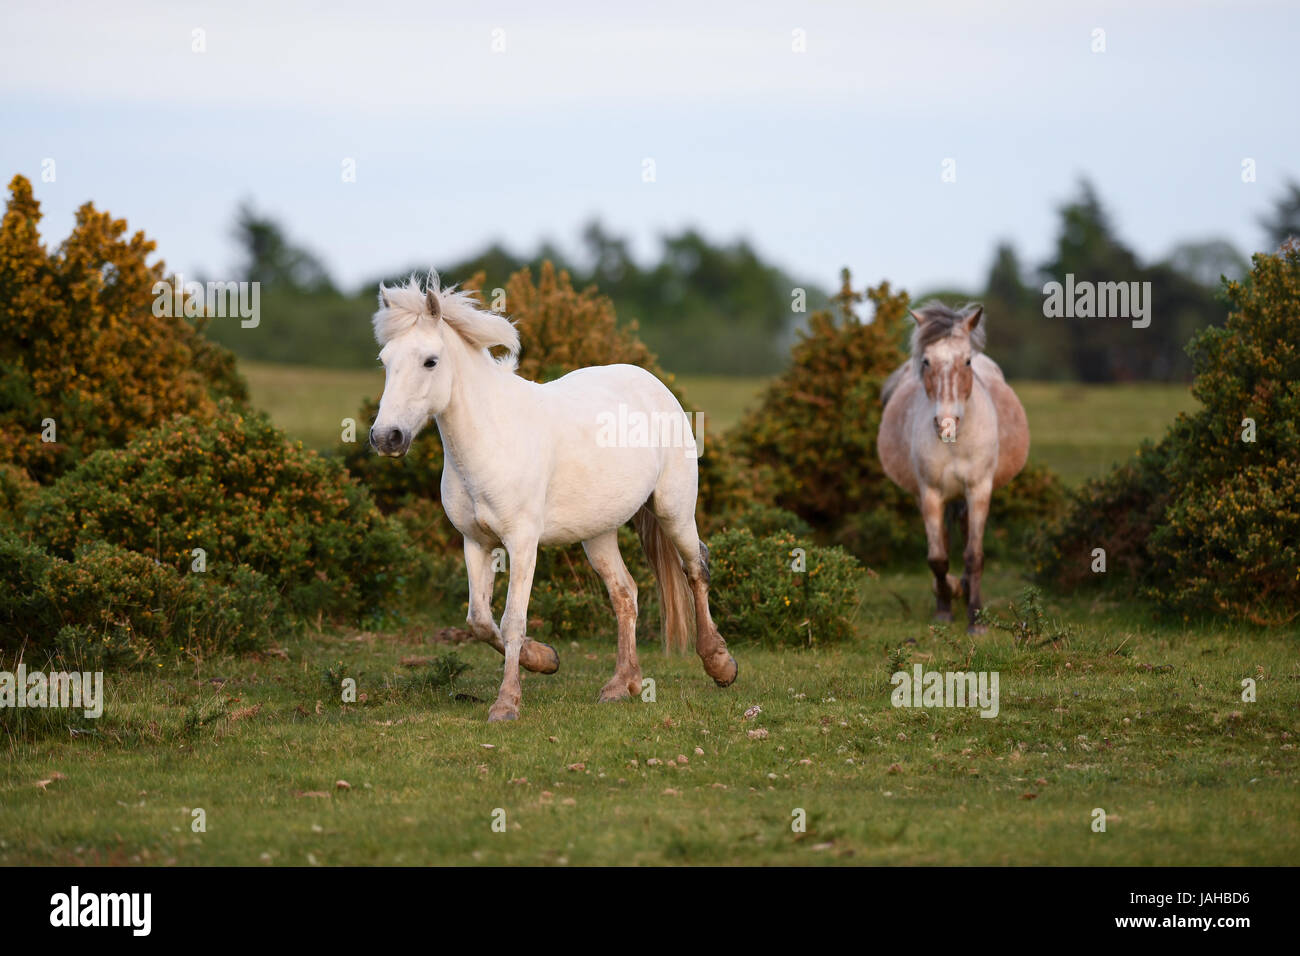 Wild New Forest ponies gallop through gorse bushes - Stock Image